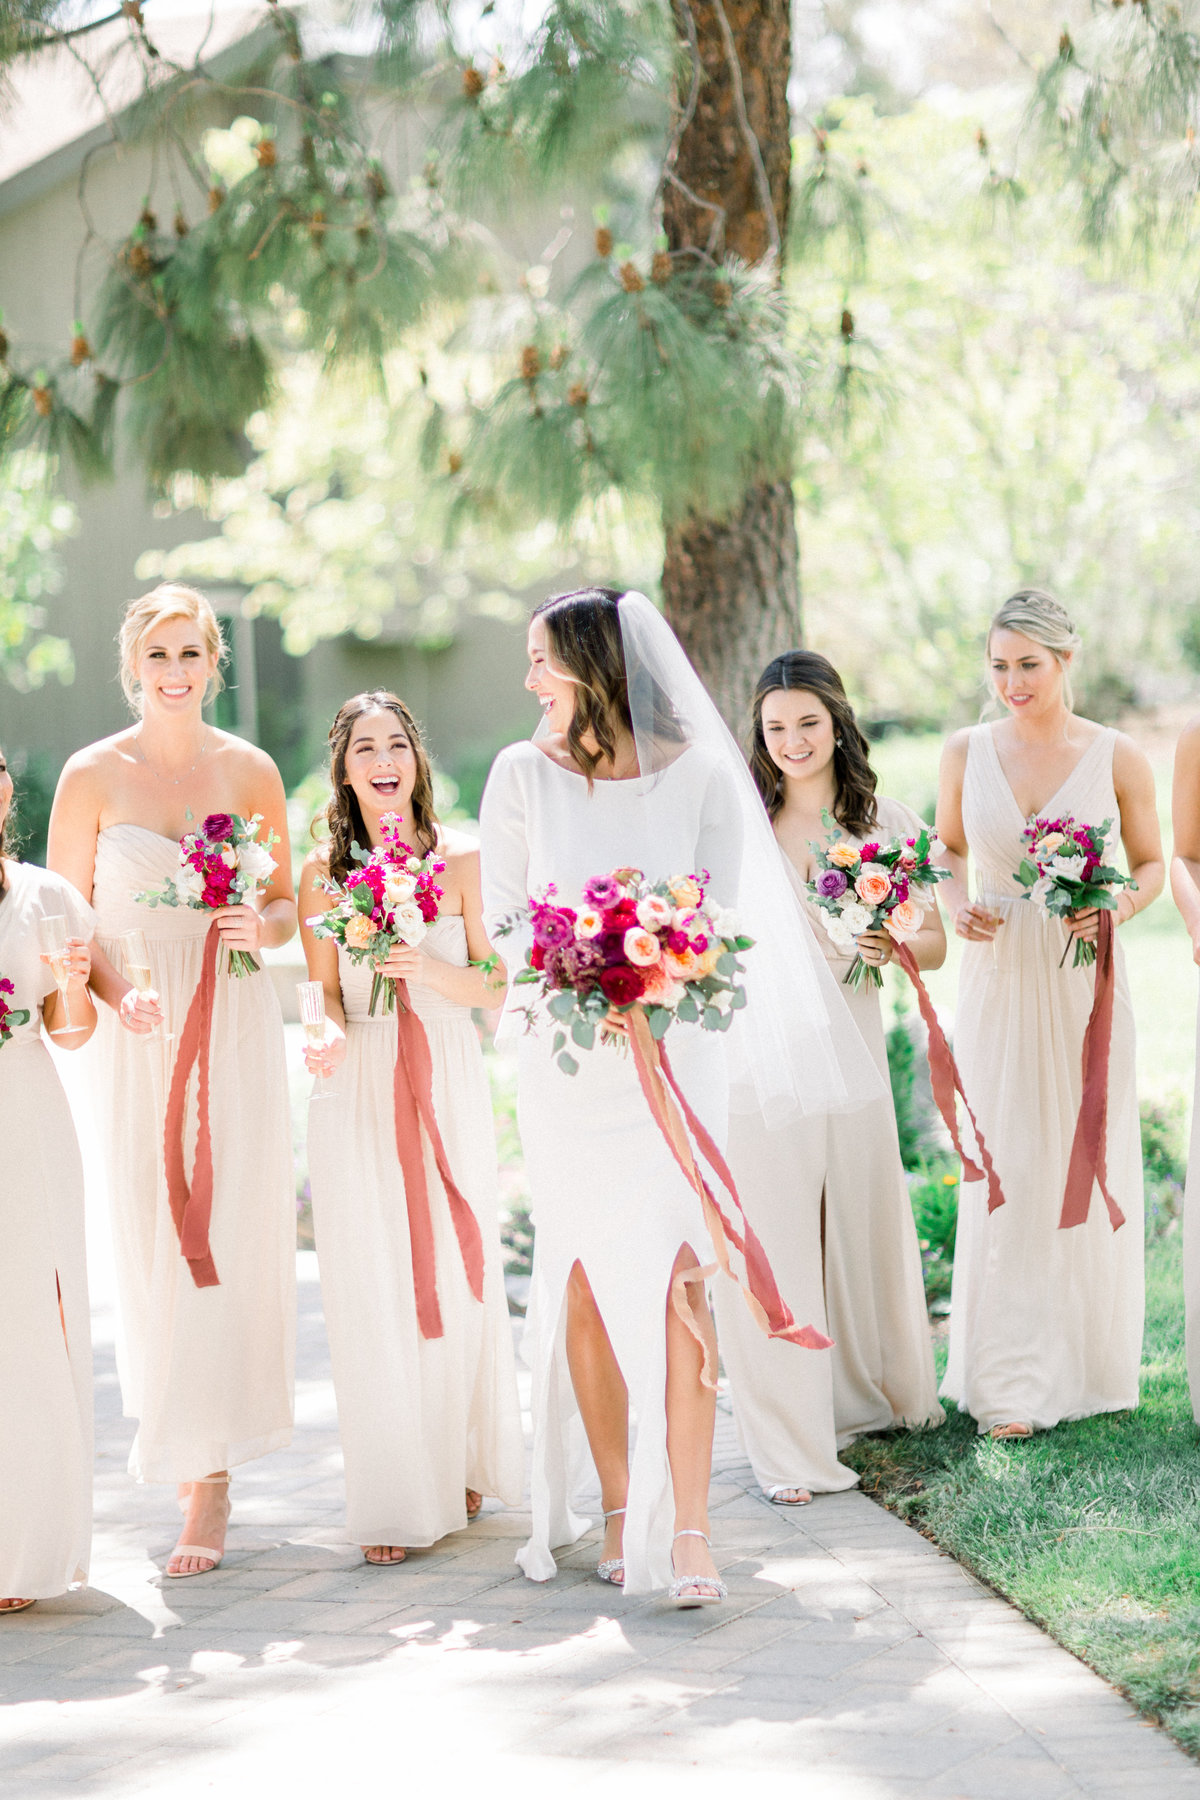 bride and bridesmaids wedding portrait at Maravilla Gardens wedding